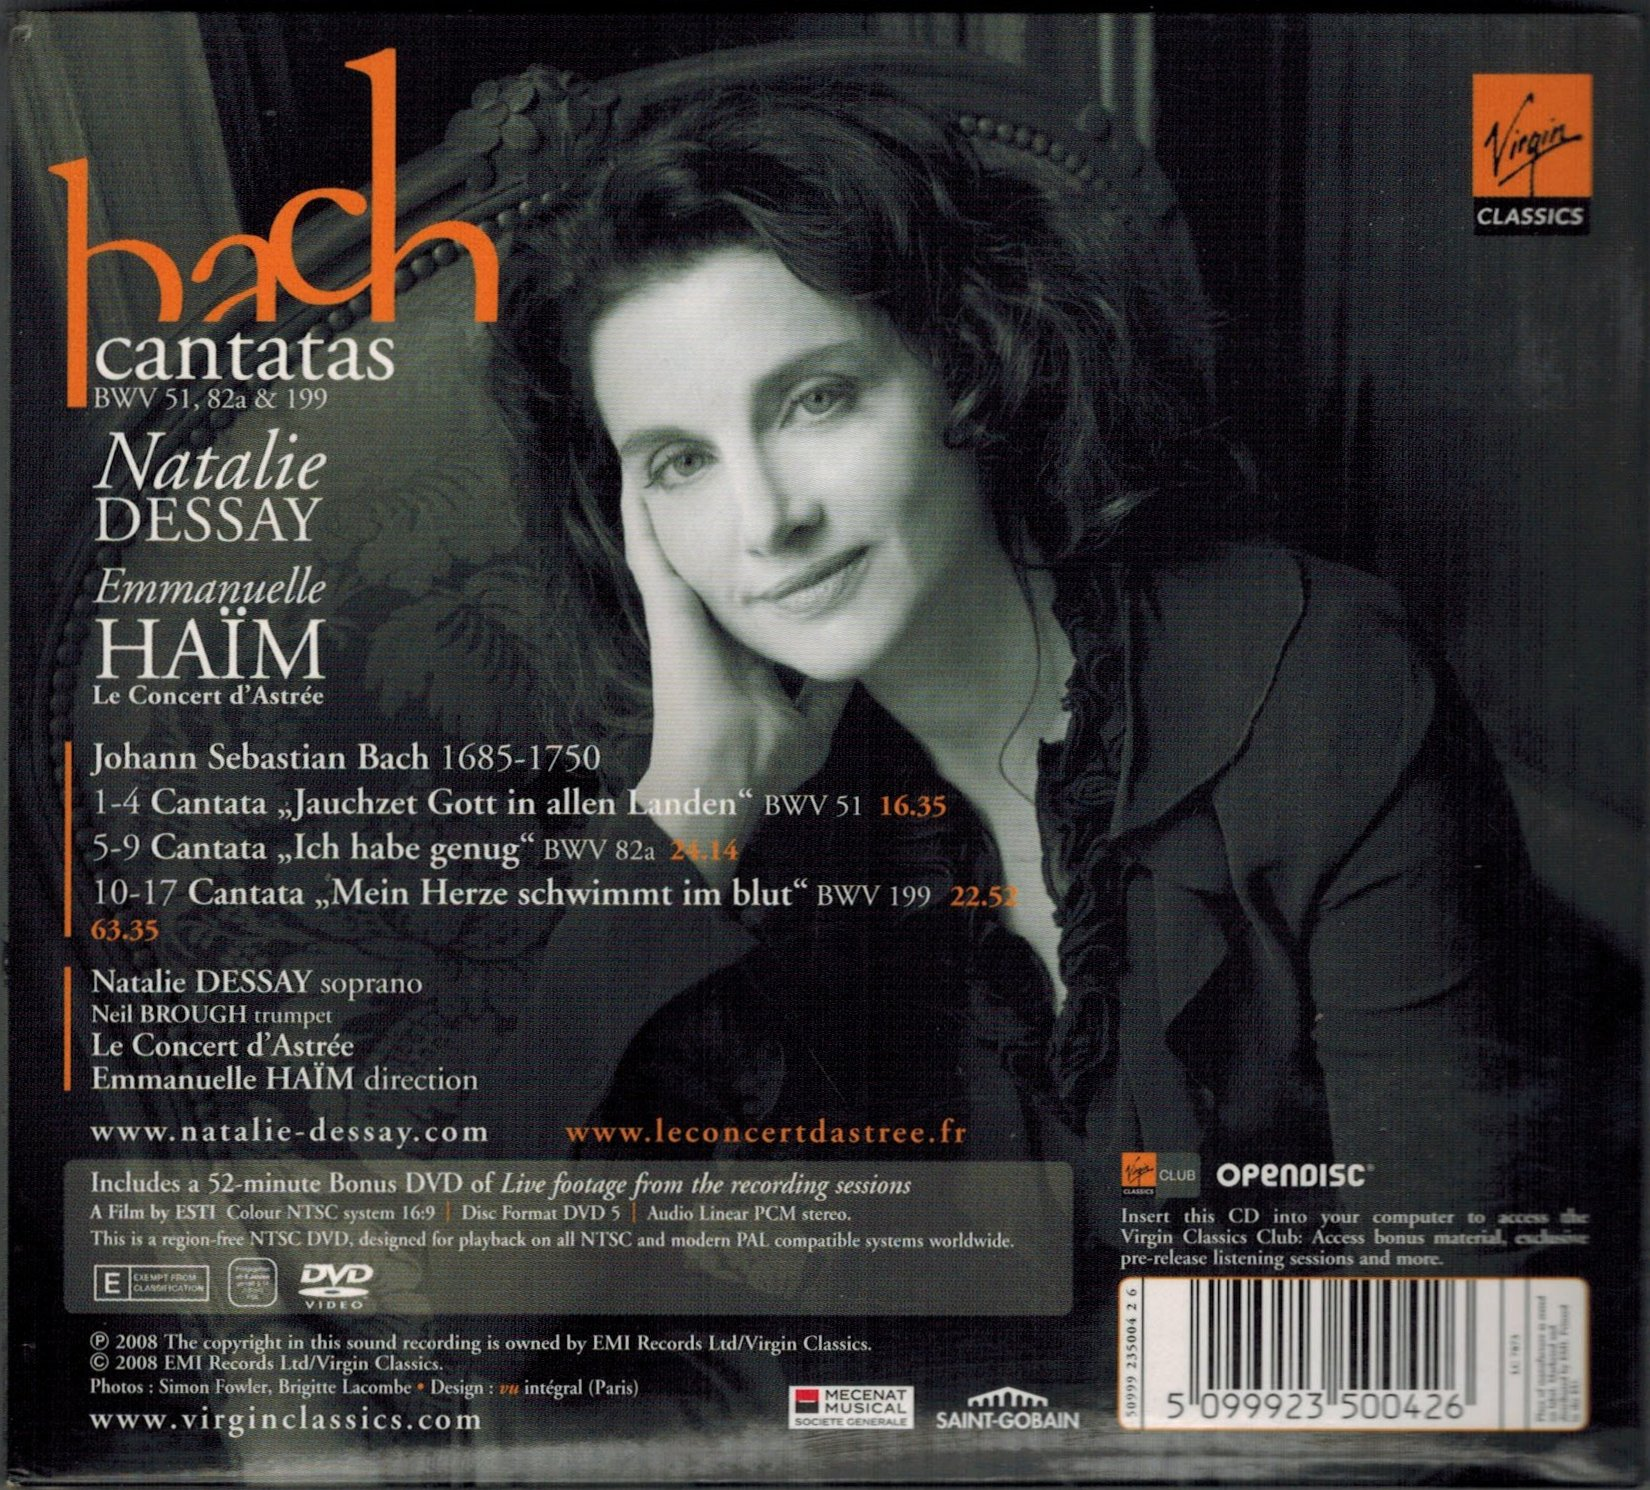 soprano natalie dessay mp3 This artist is also included in classical catalog where you can find more classical music content.